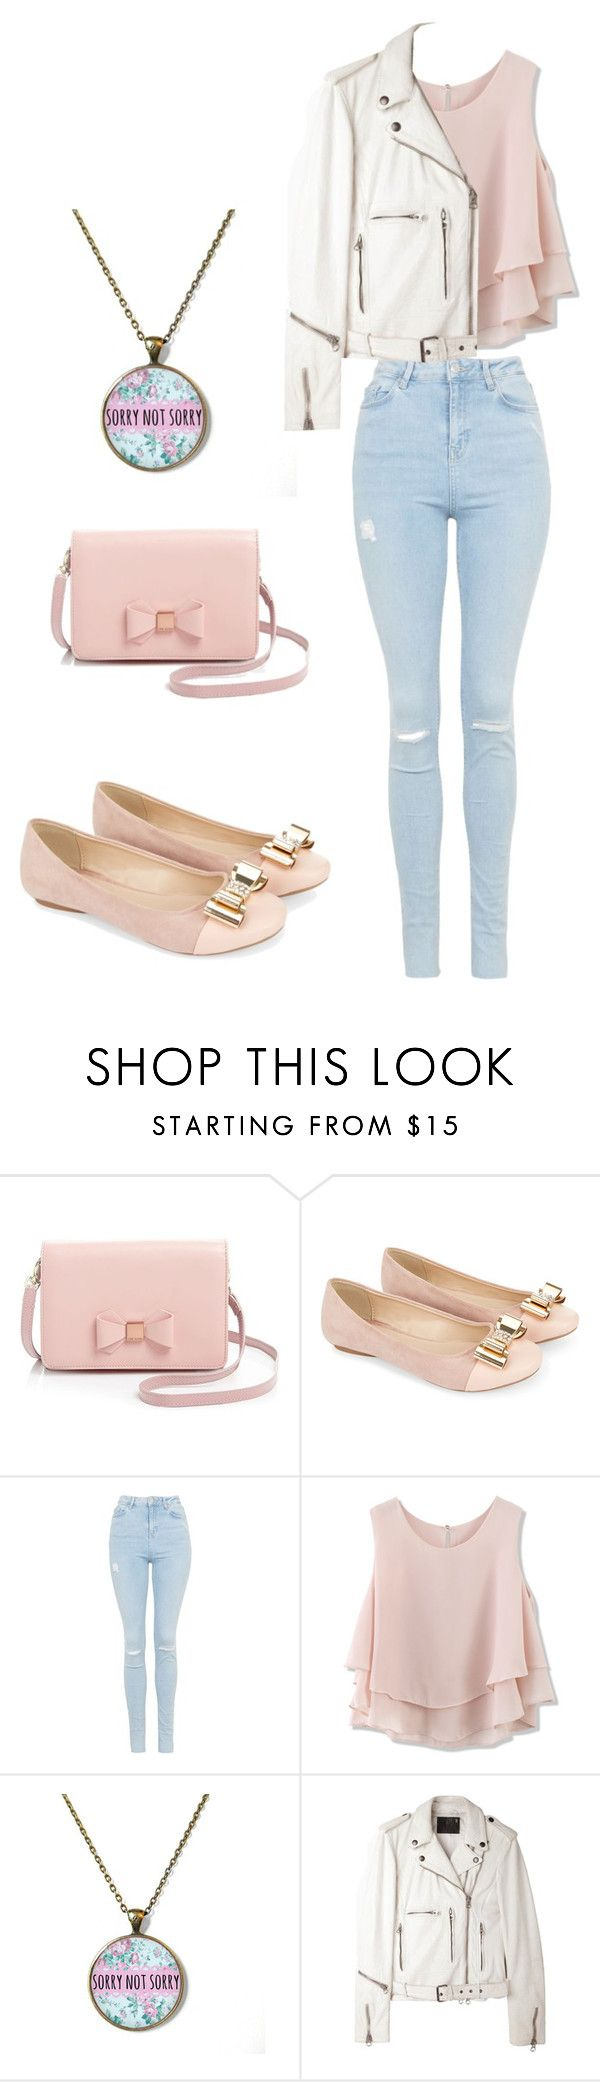 """"" by prettygirlrock9 ❤ liked on Polyvore featuring Ted Baker, Monsoon, Topshop, Chicwish and R13"